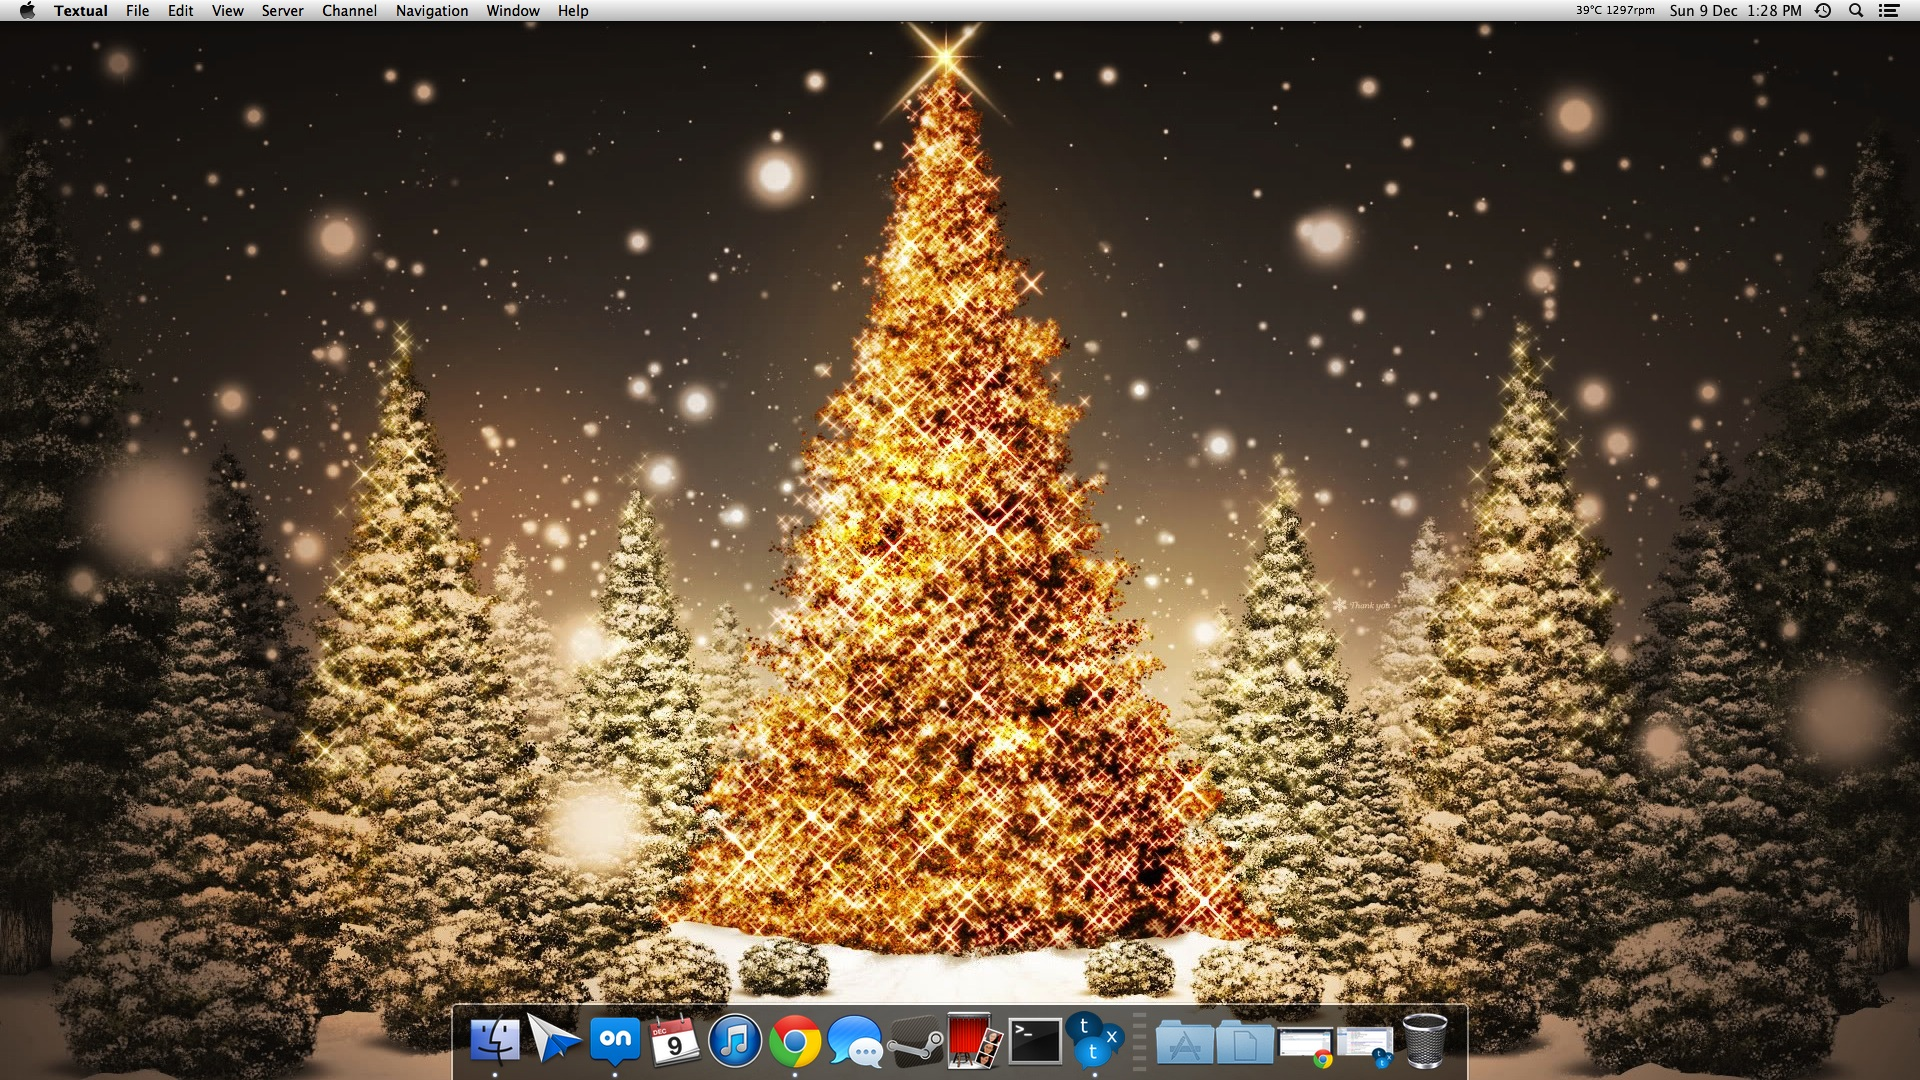 Screen Shot 2012-12-09 at 1.28.55 PM.jpg